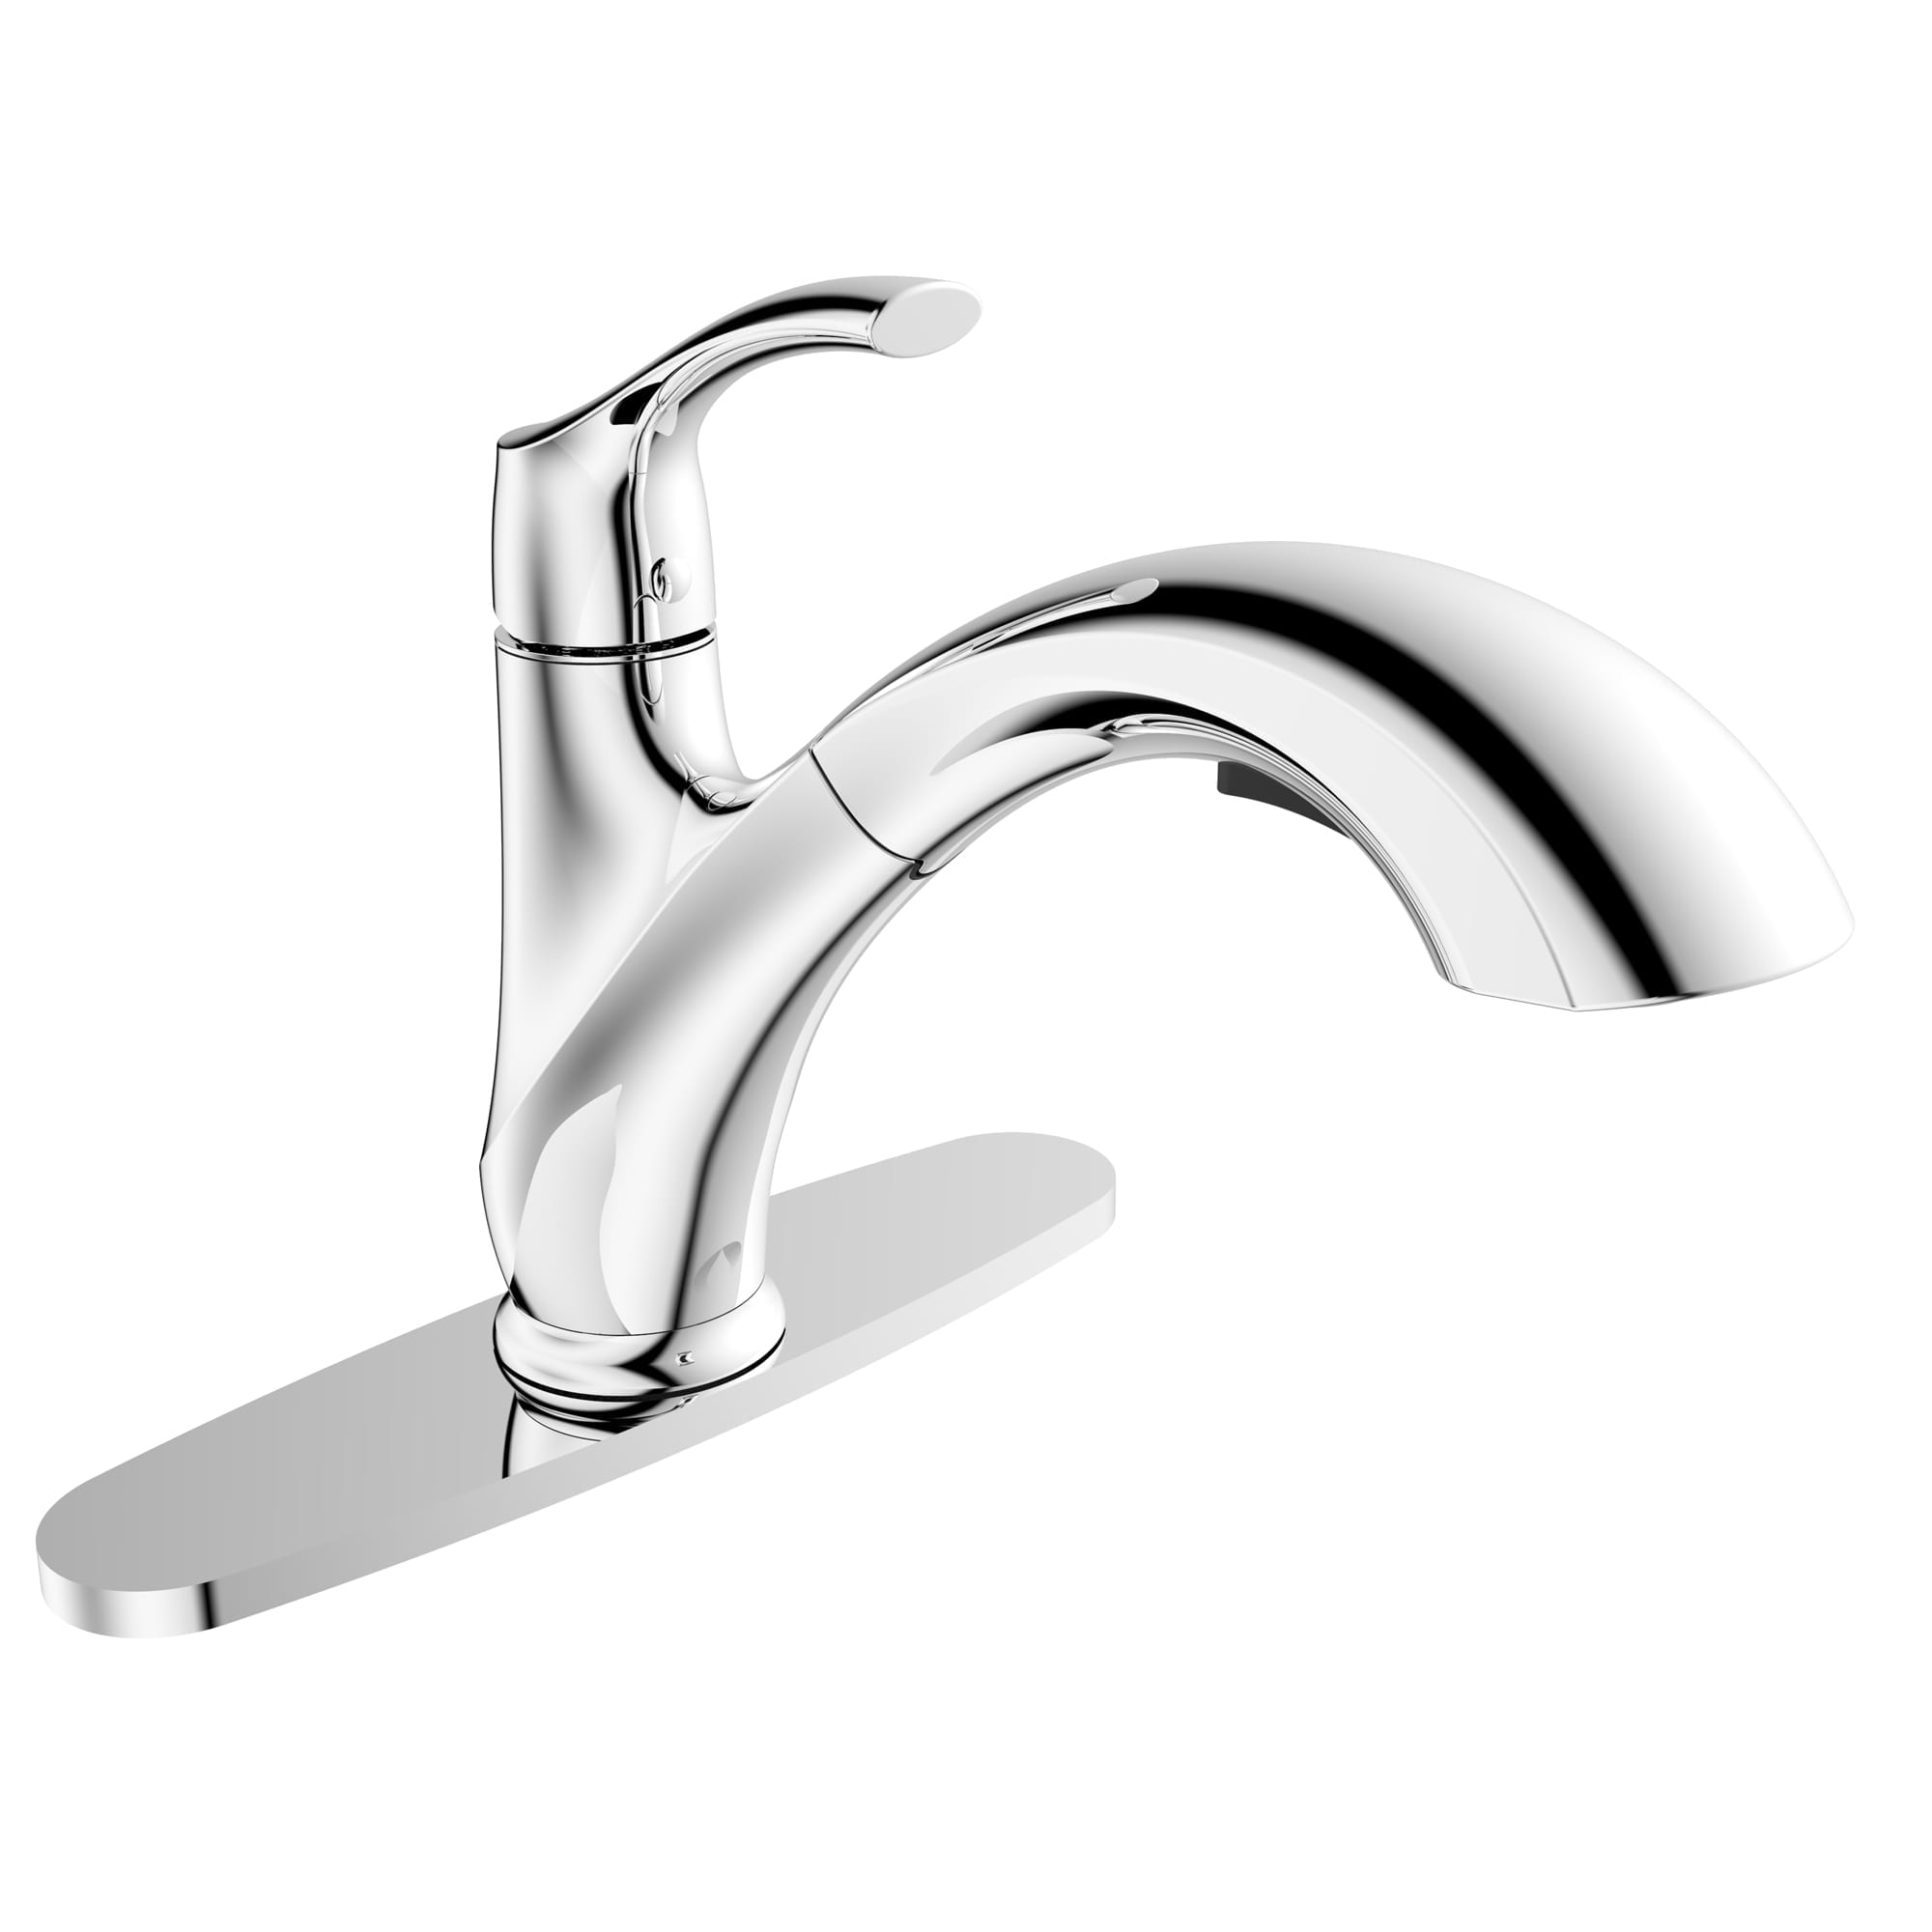 linden out faucet faucets kitchen pull available with technology noland plumbingshowroom